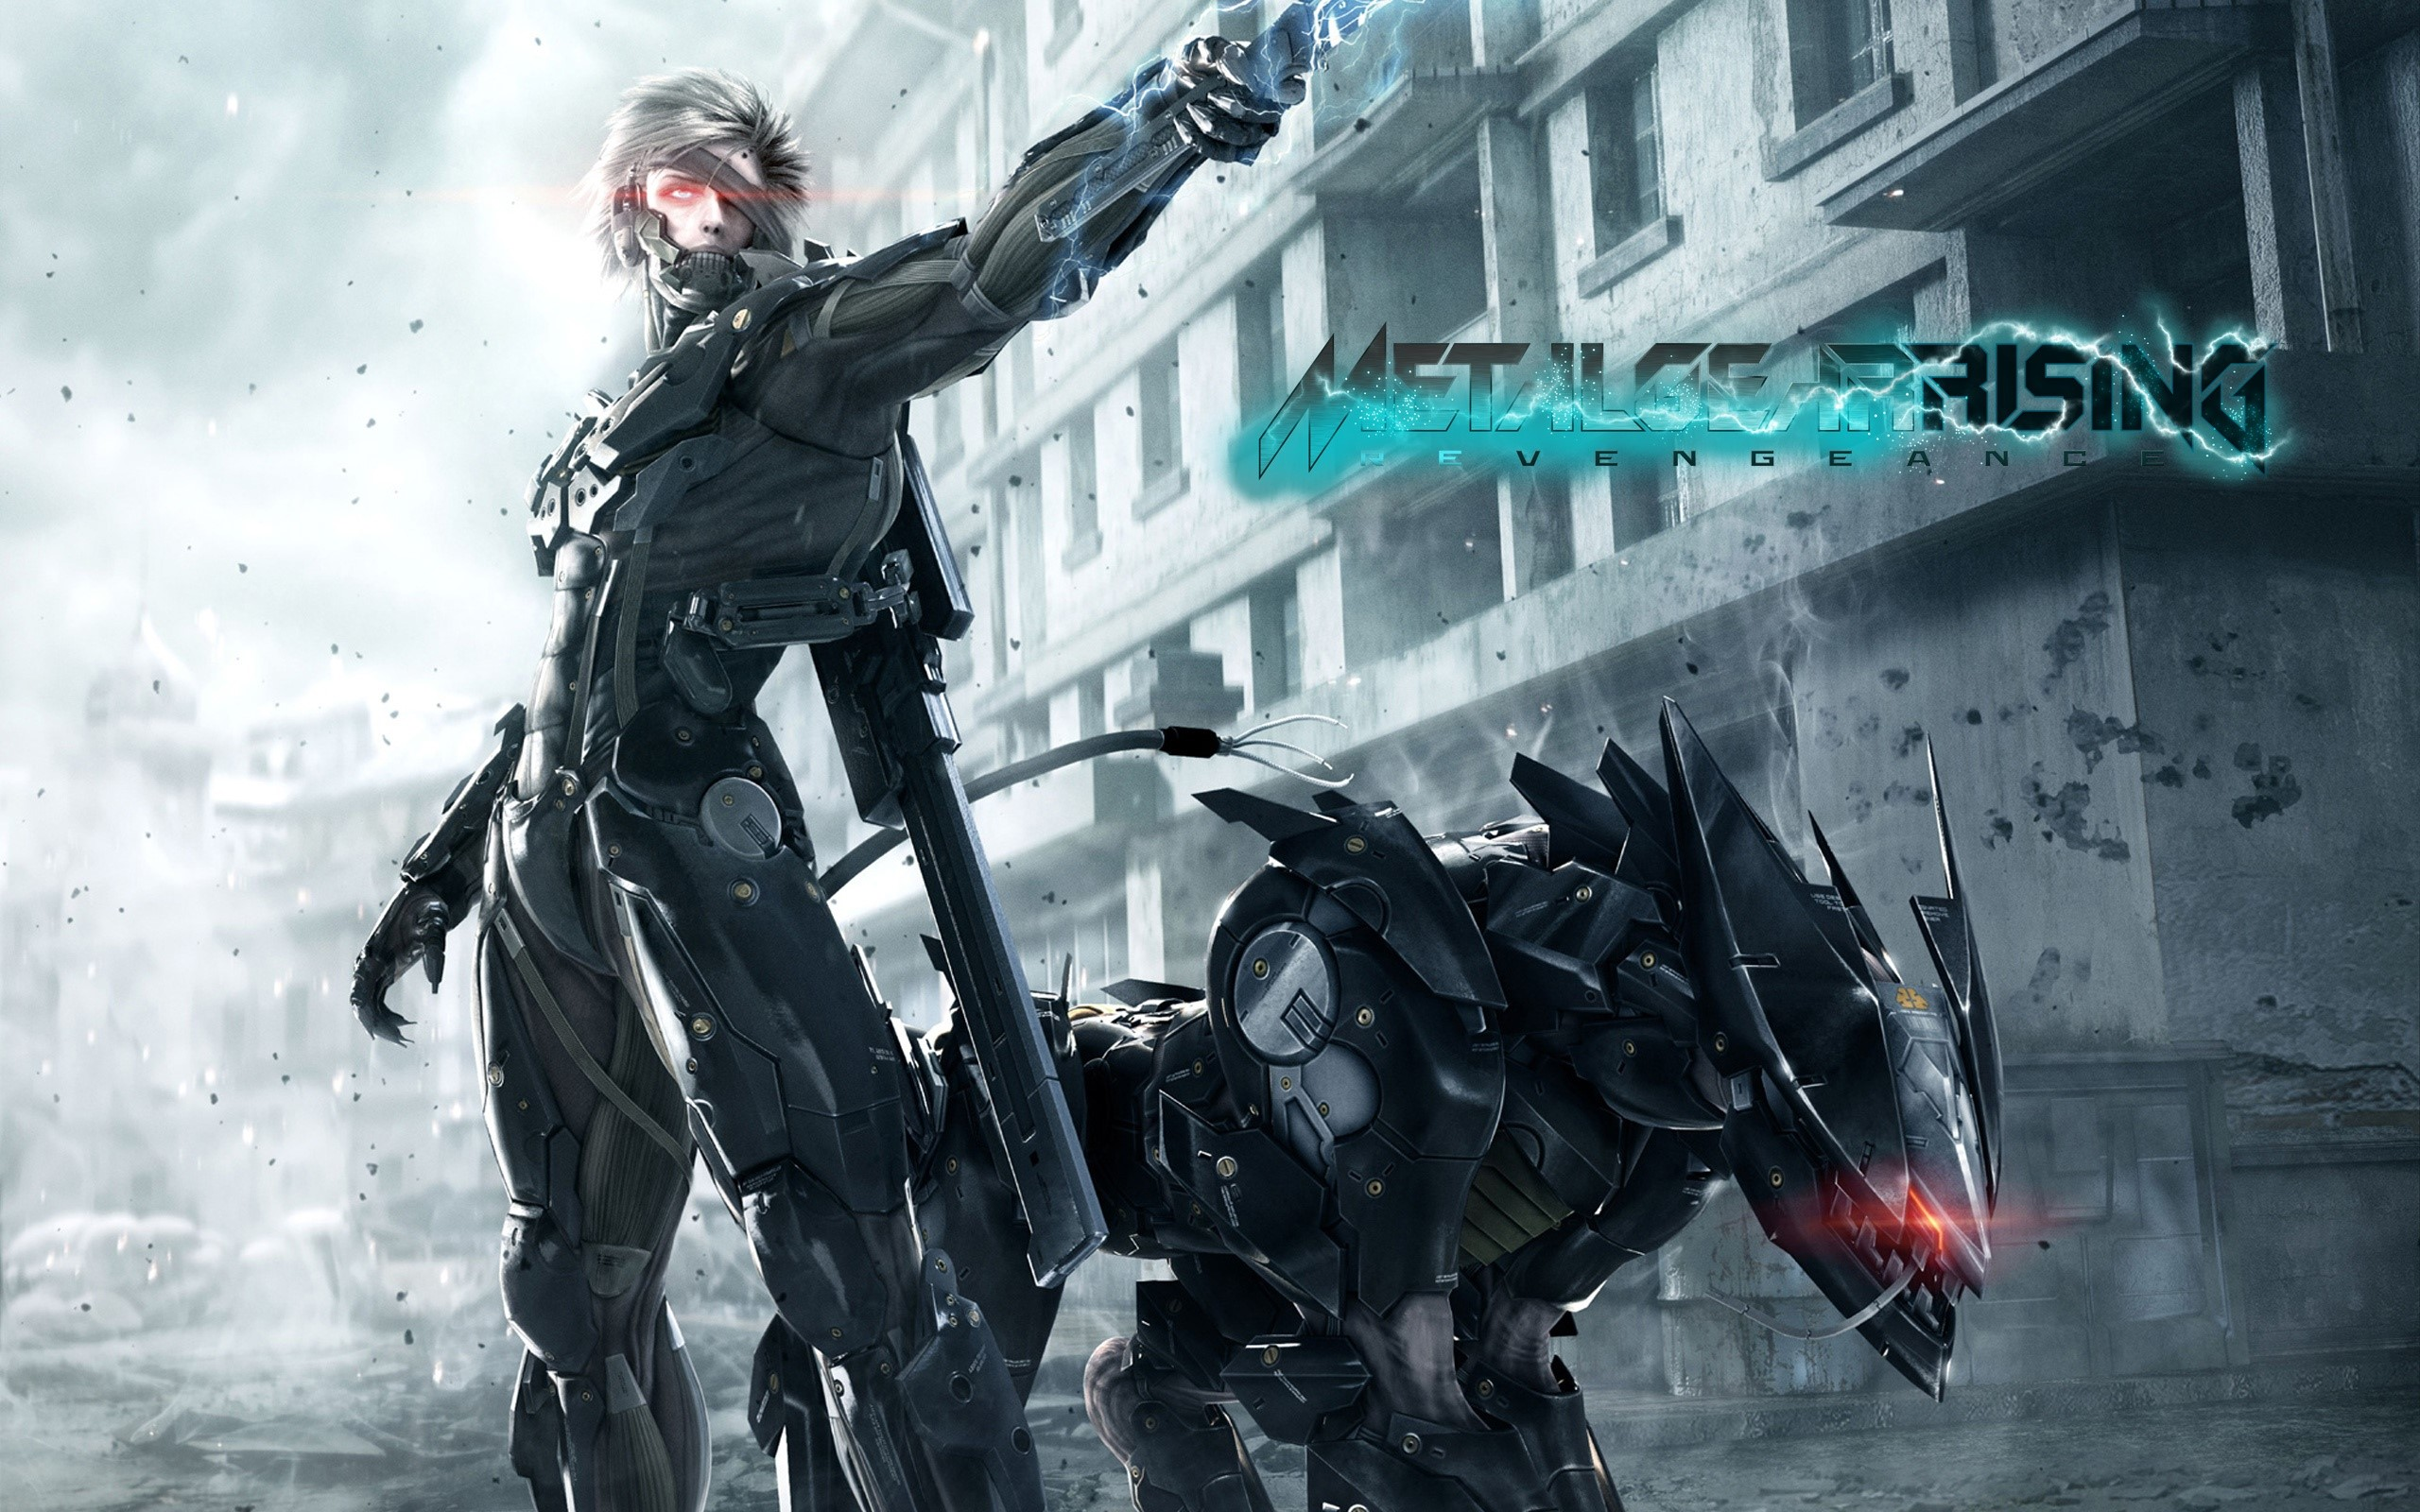 Metal Gear Rising Revengeance 4 Wallpaper 2k Quad Hd Id 1087